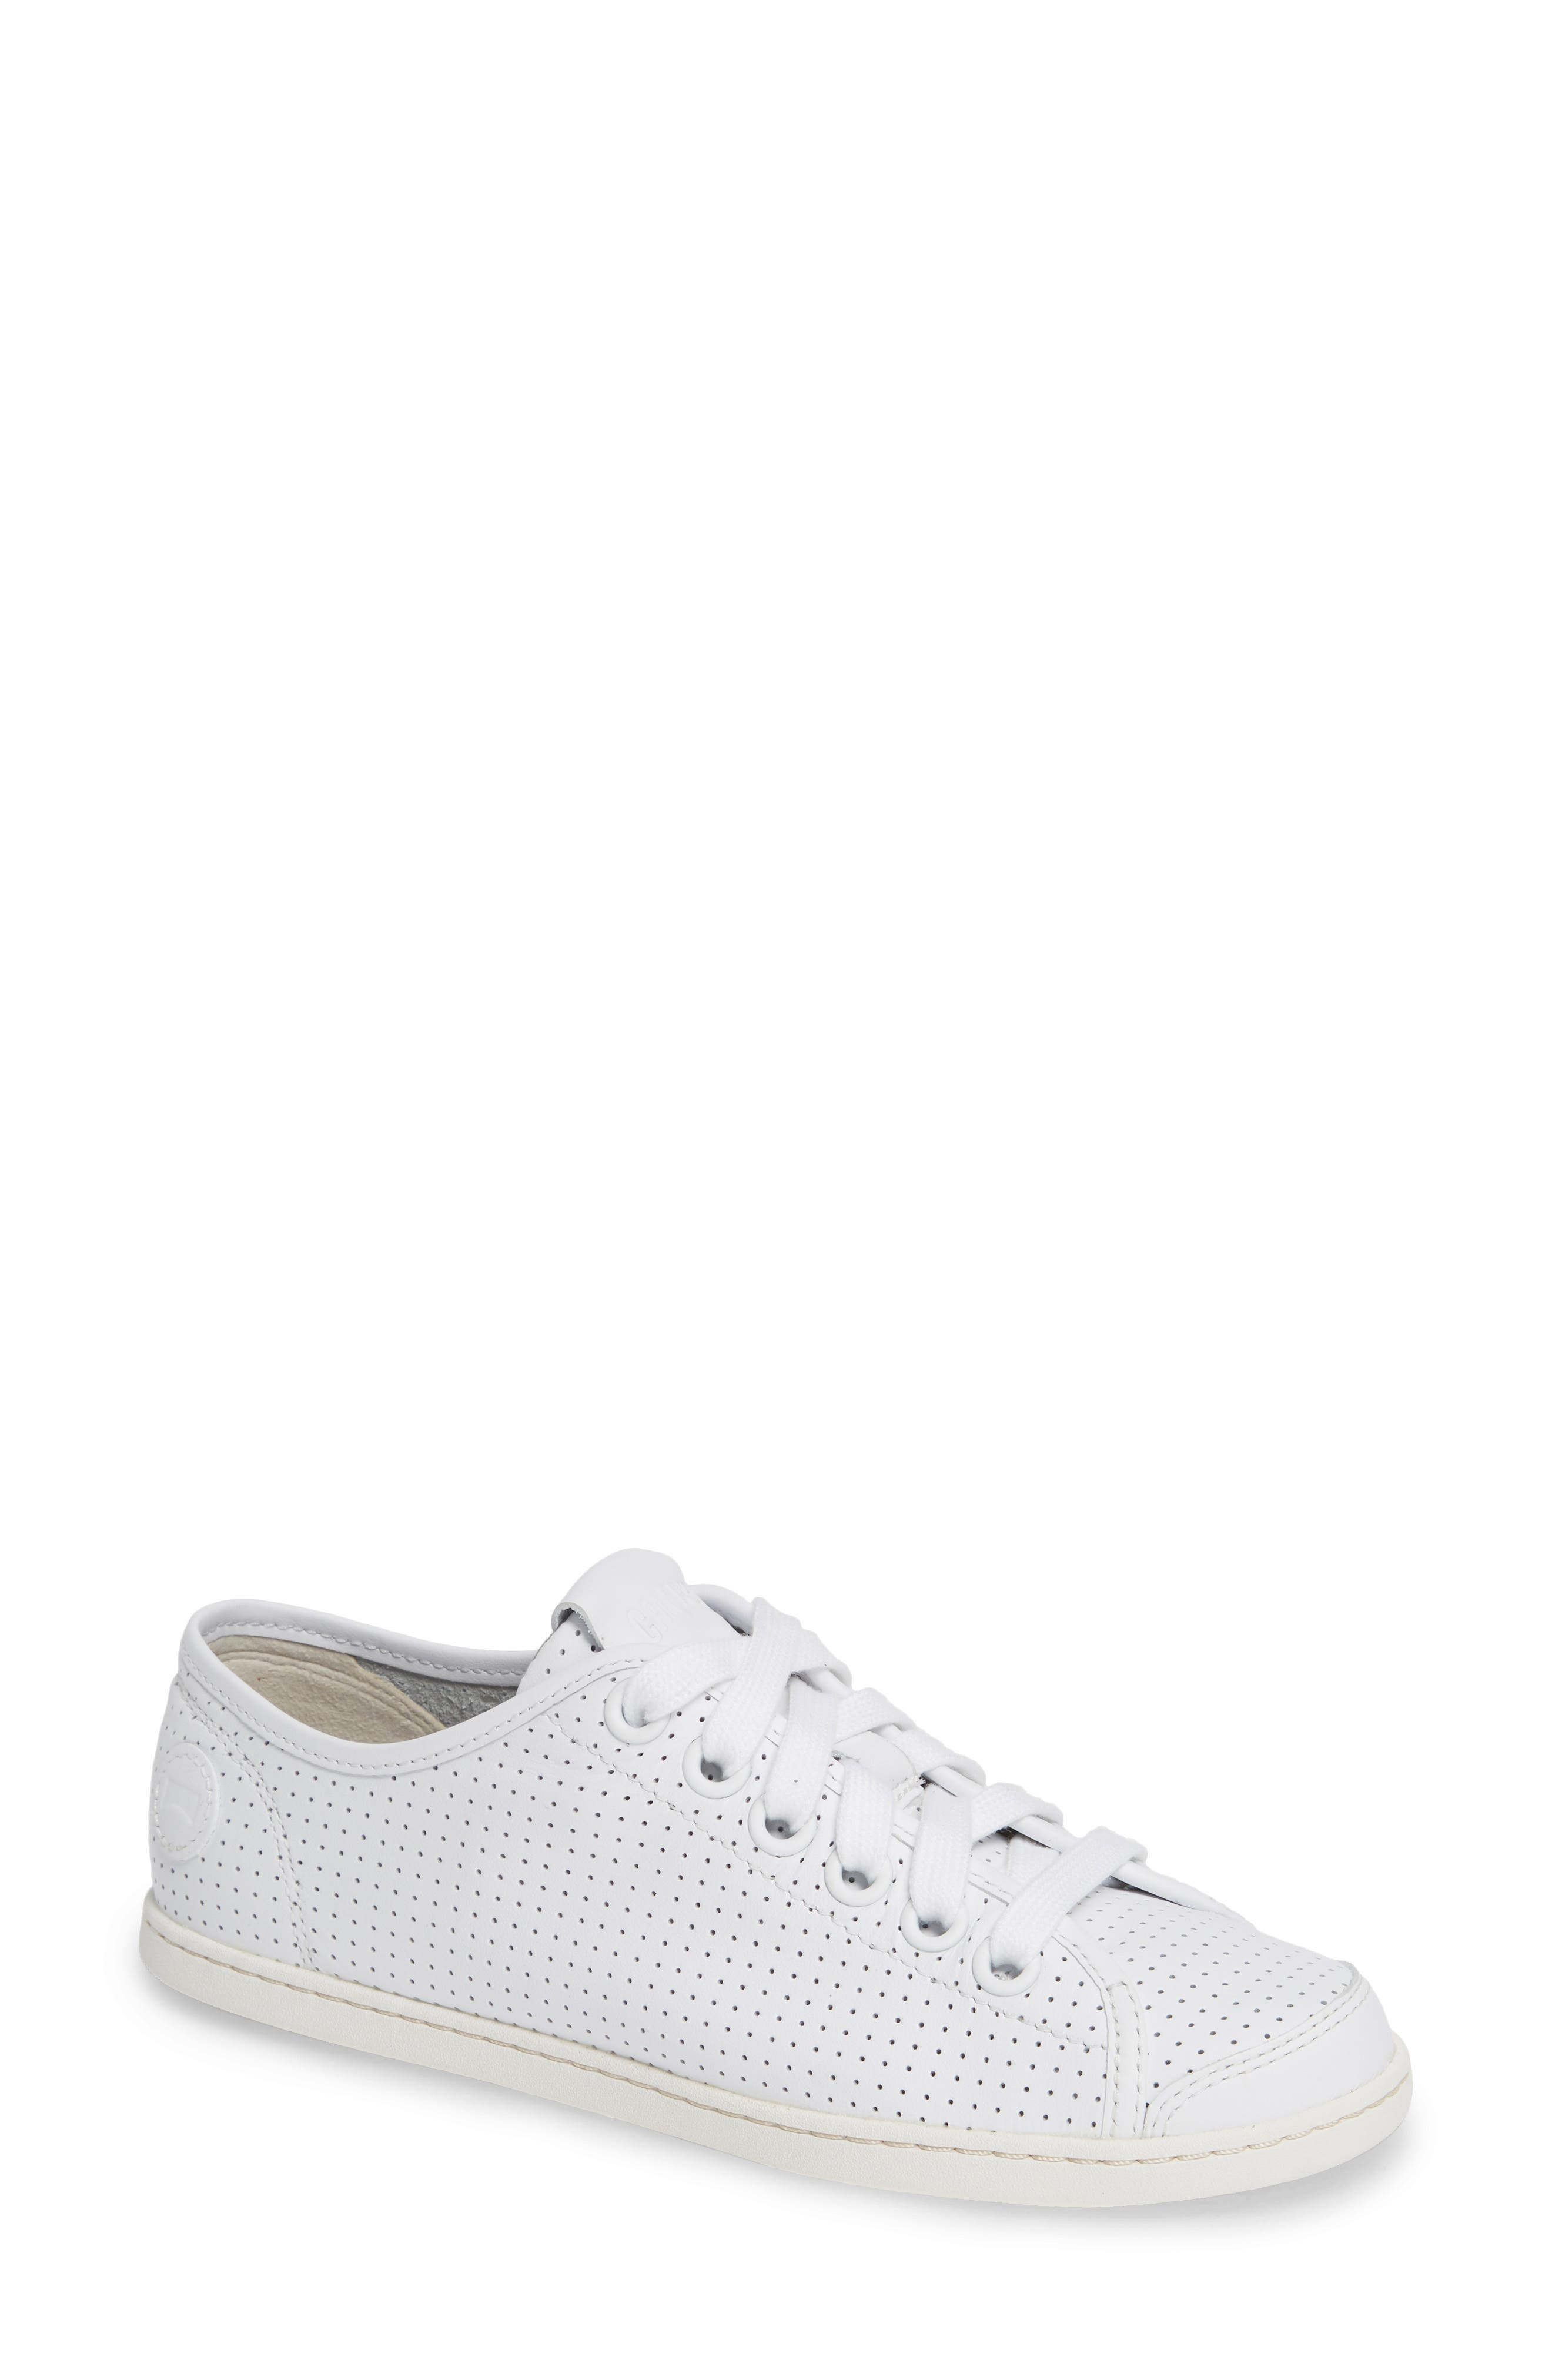 CAMPER Uno Perforated Sneaker in White Natural Leather